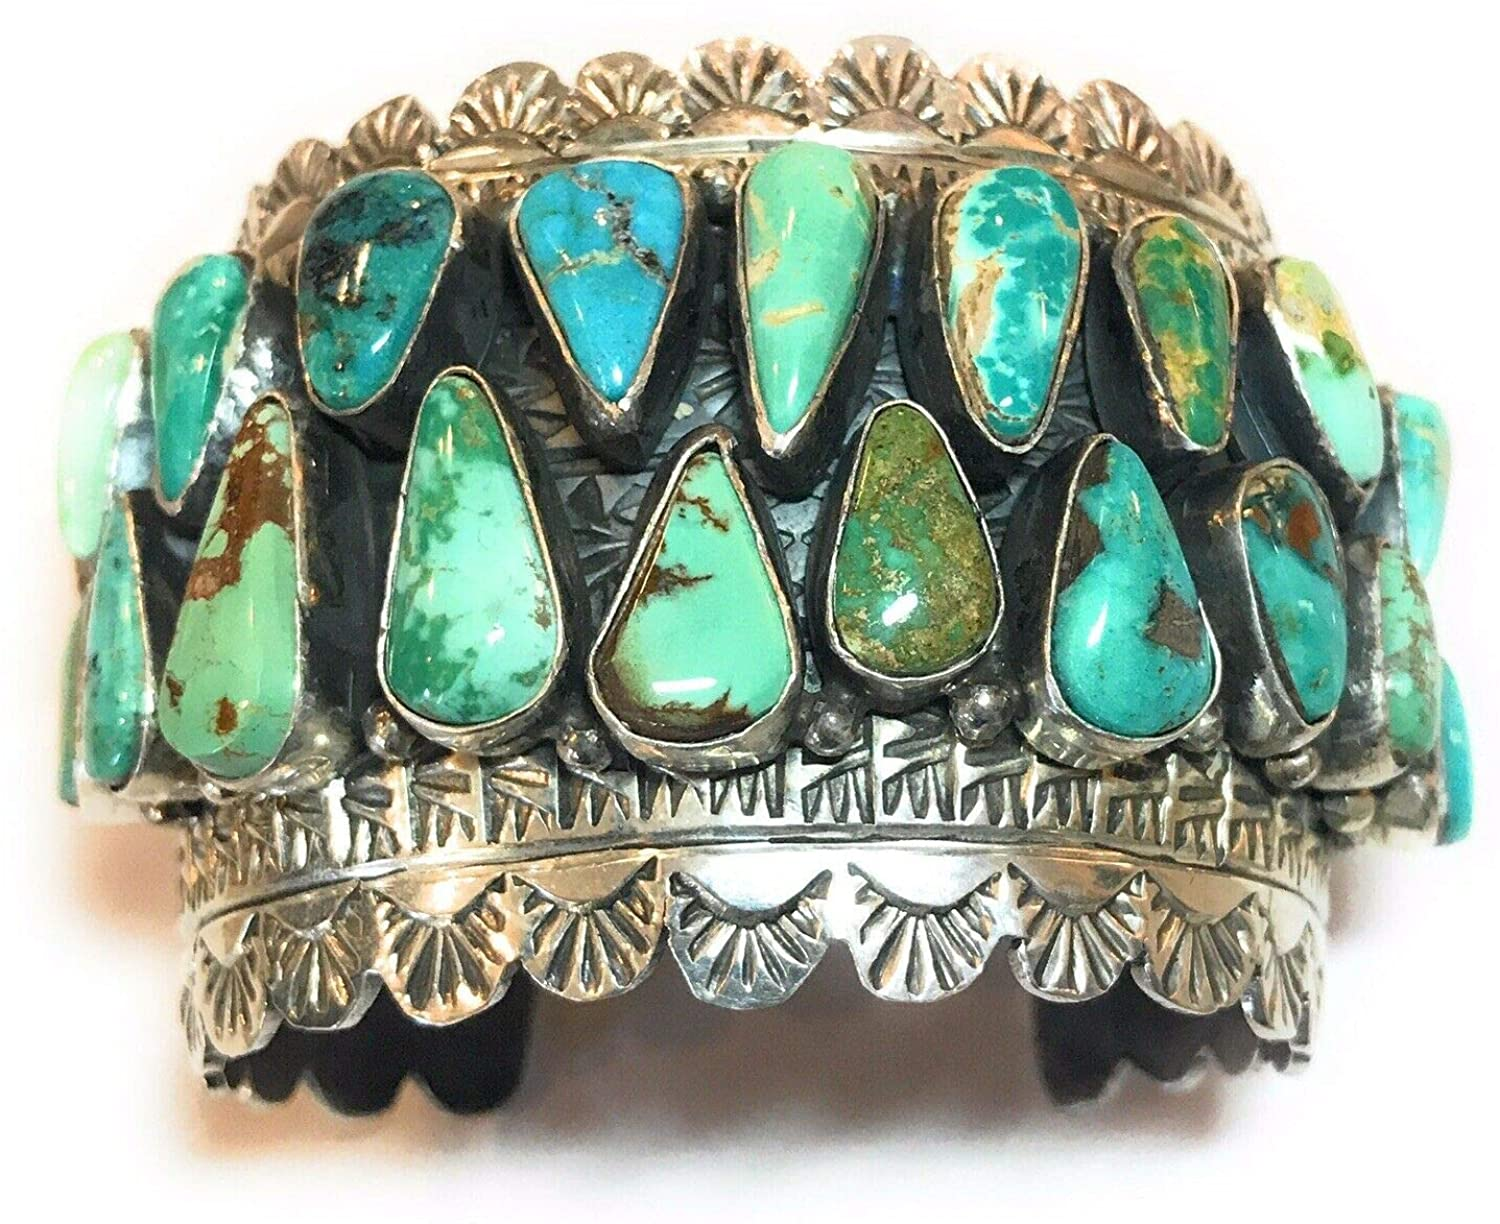 Nizhoni Traders LLC Incredible Royston Turquoise and Sterling Silver Cuff Bracelet Signed